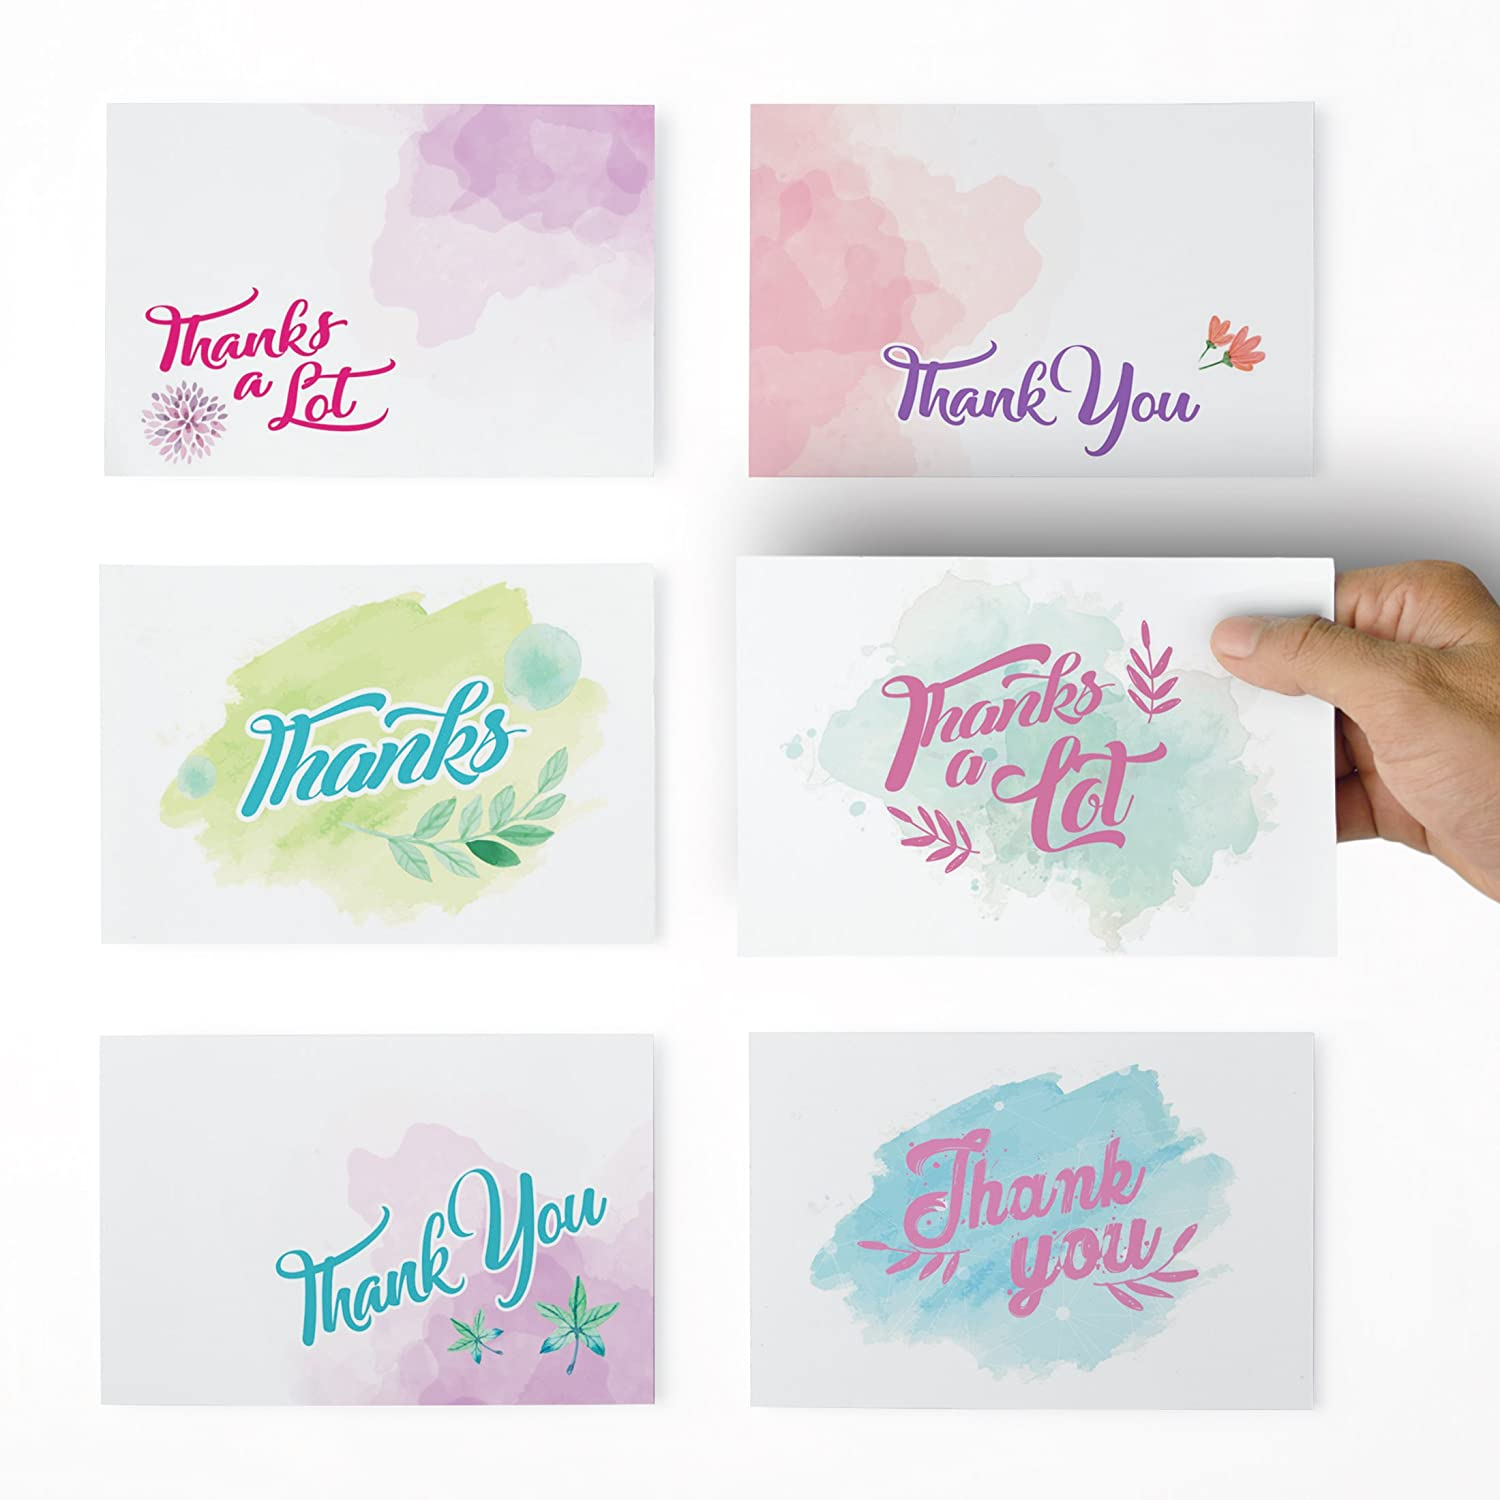 Thank You Cards - 36 Water Colors Thank You Notes for Your Wedding, Baby  Shower, Business, Anniversary, Bridal Shower - Water Colors Thank You Cards  with ...